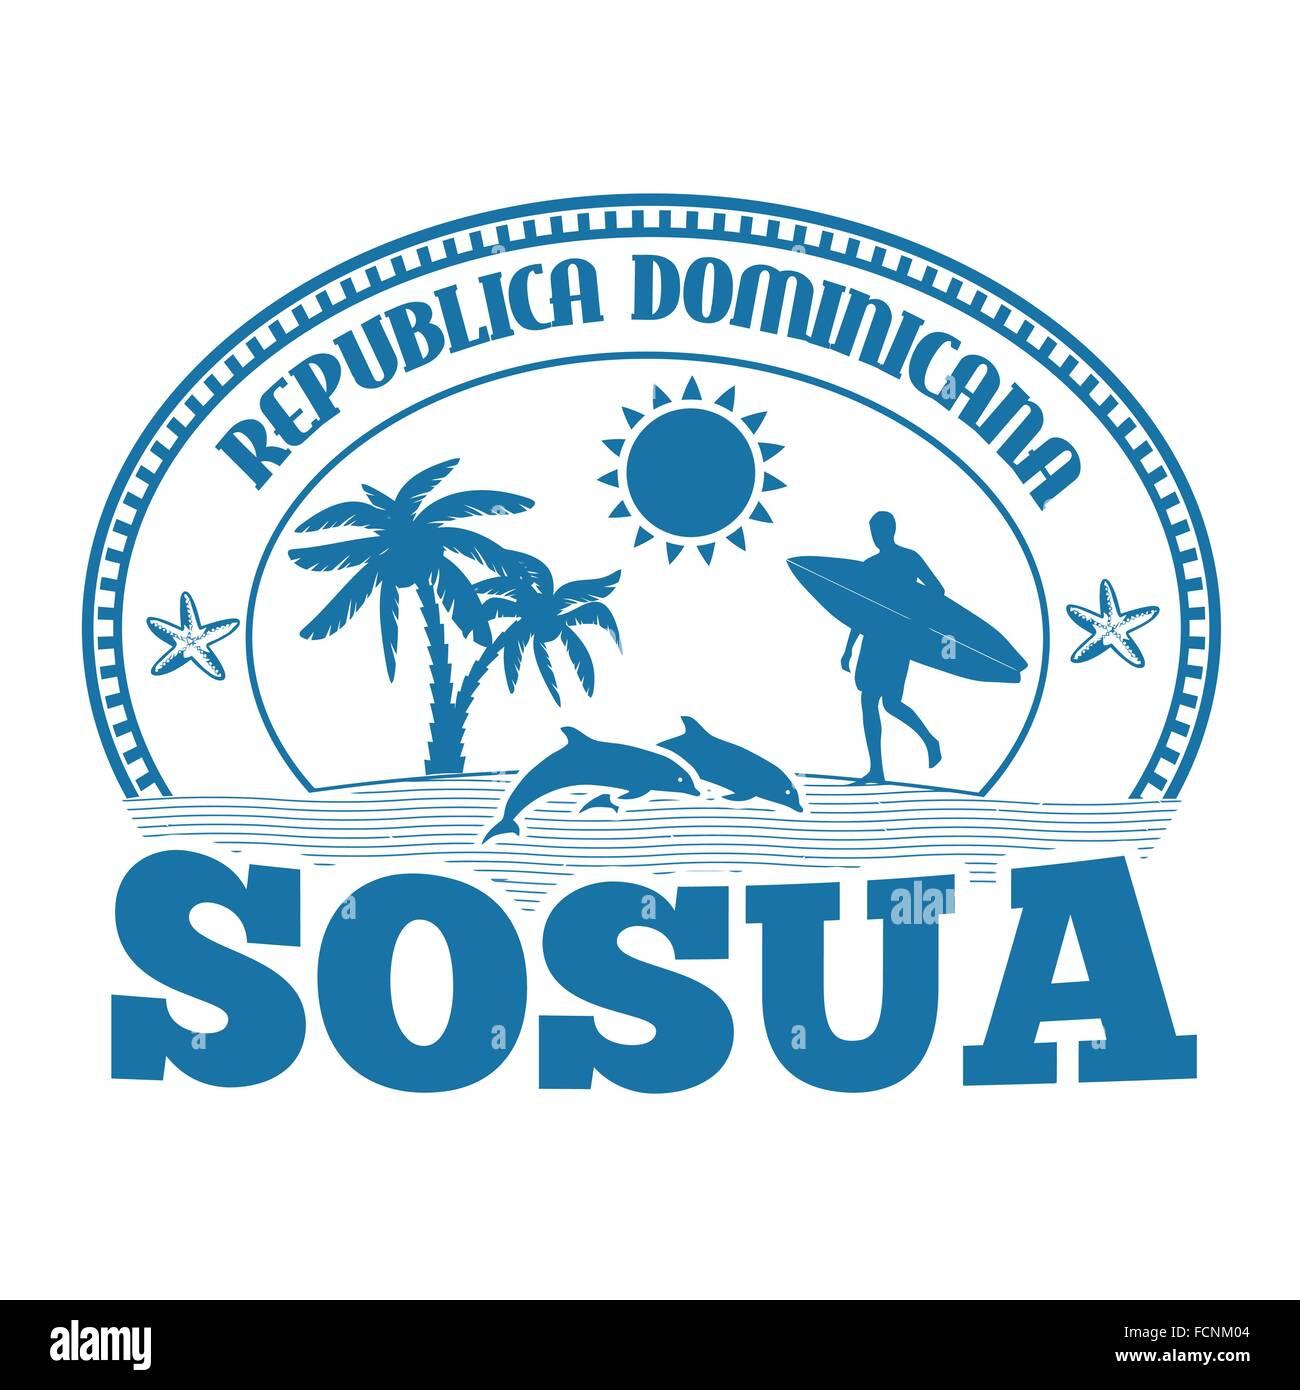 Sosua, Dominican Republic, stamp or label on white background, vector illustration Stock Vector